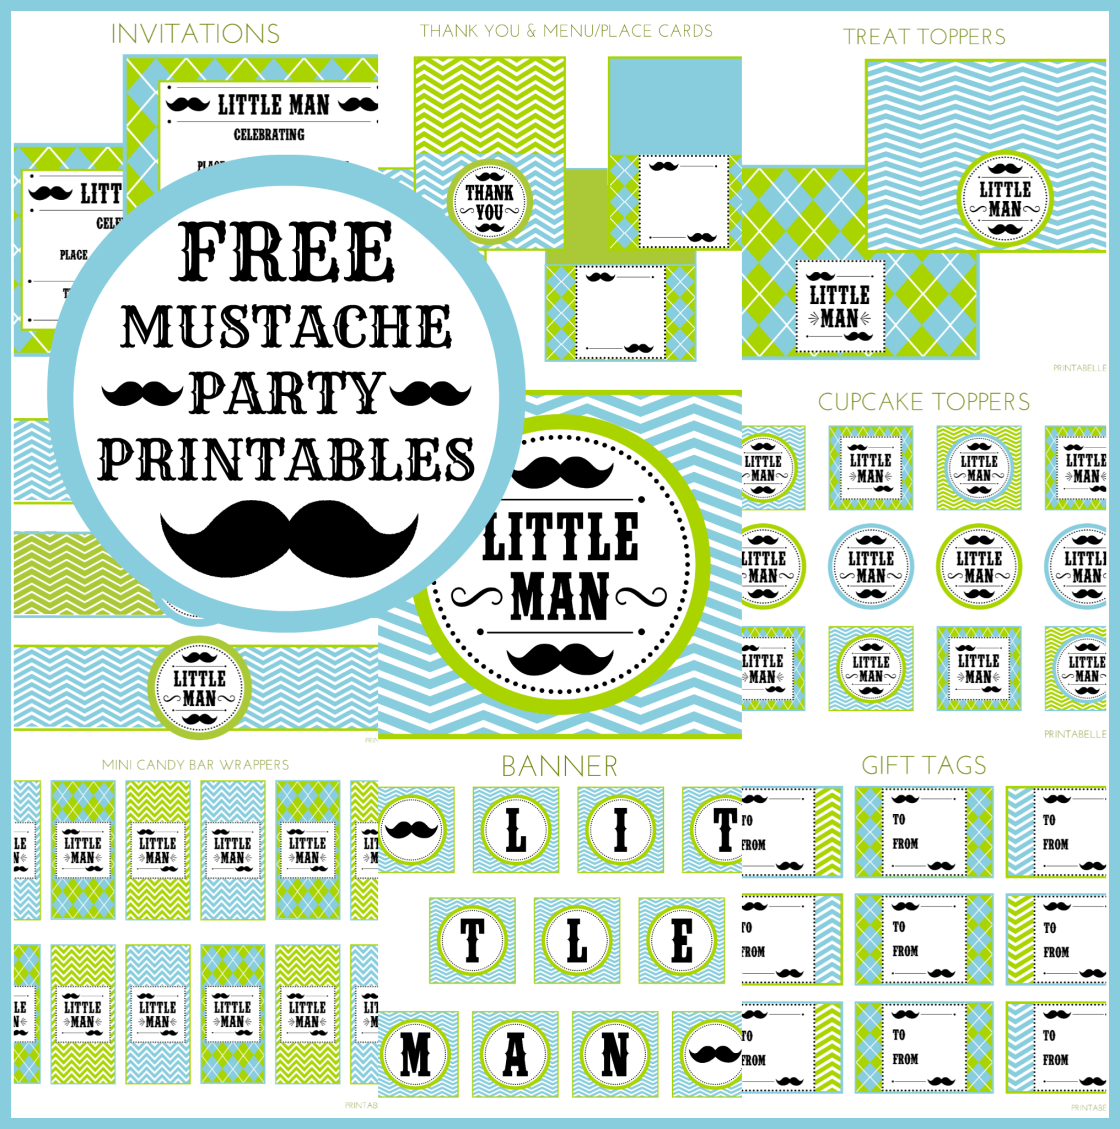 Baby Shower Invitation Printables Little Man Mustache Template Bash From Printabelle Ts Ideas